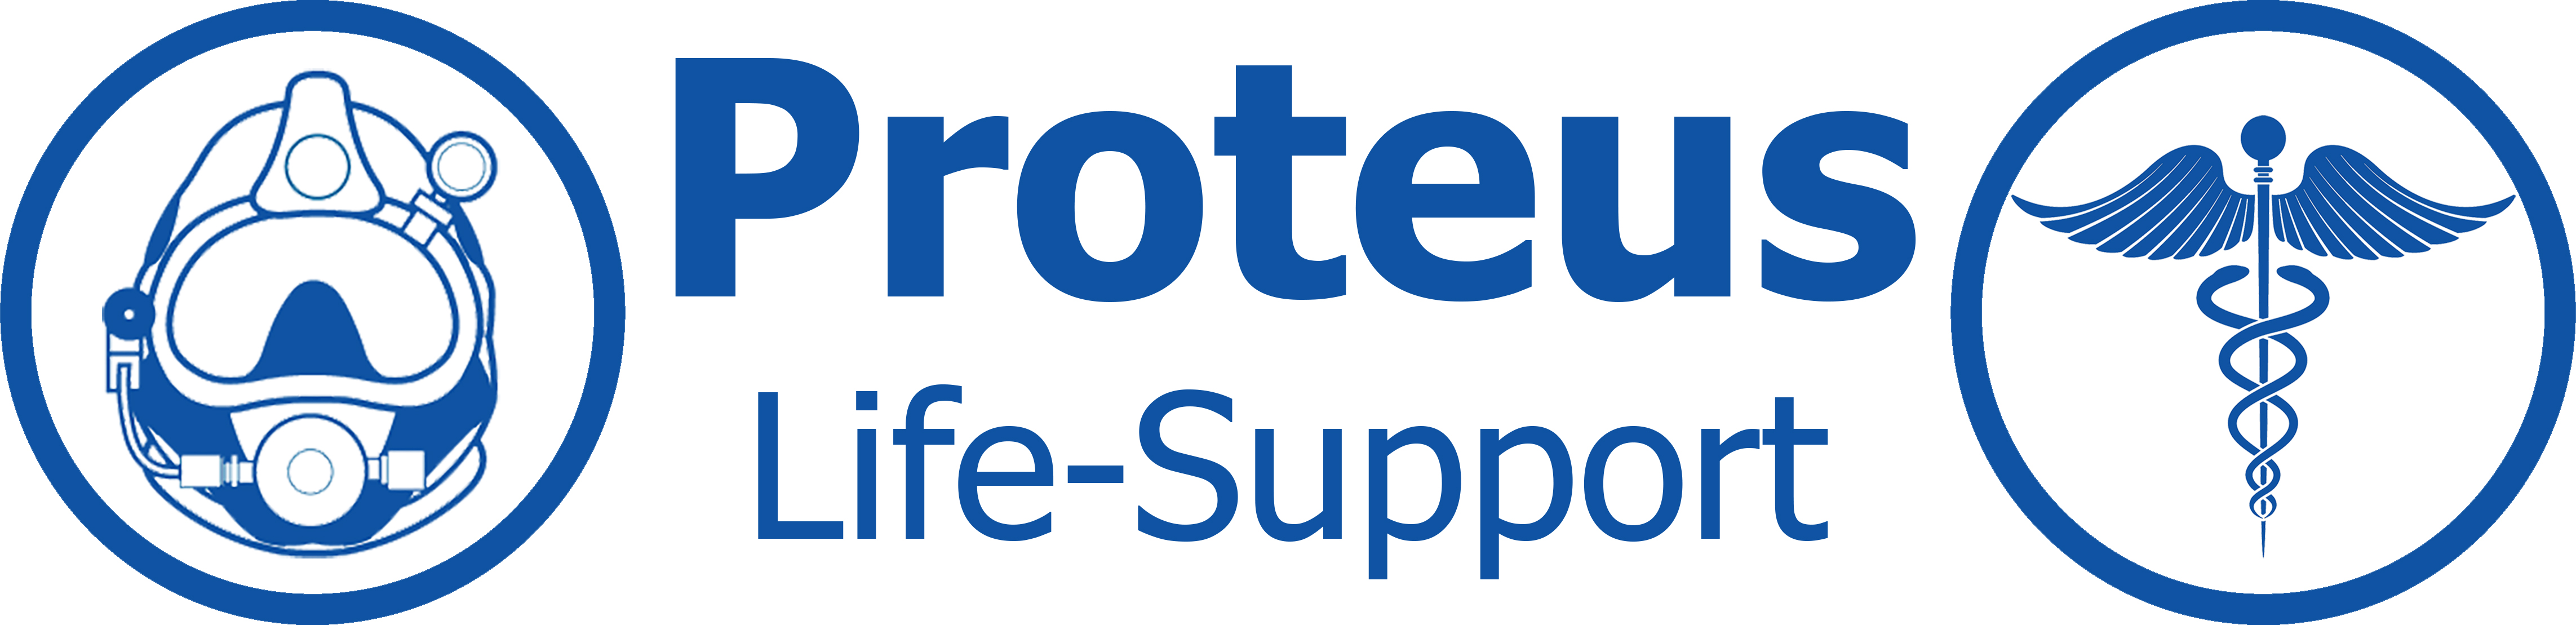 Proteus Life-Support